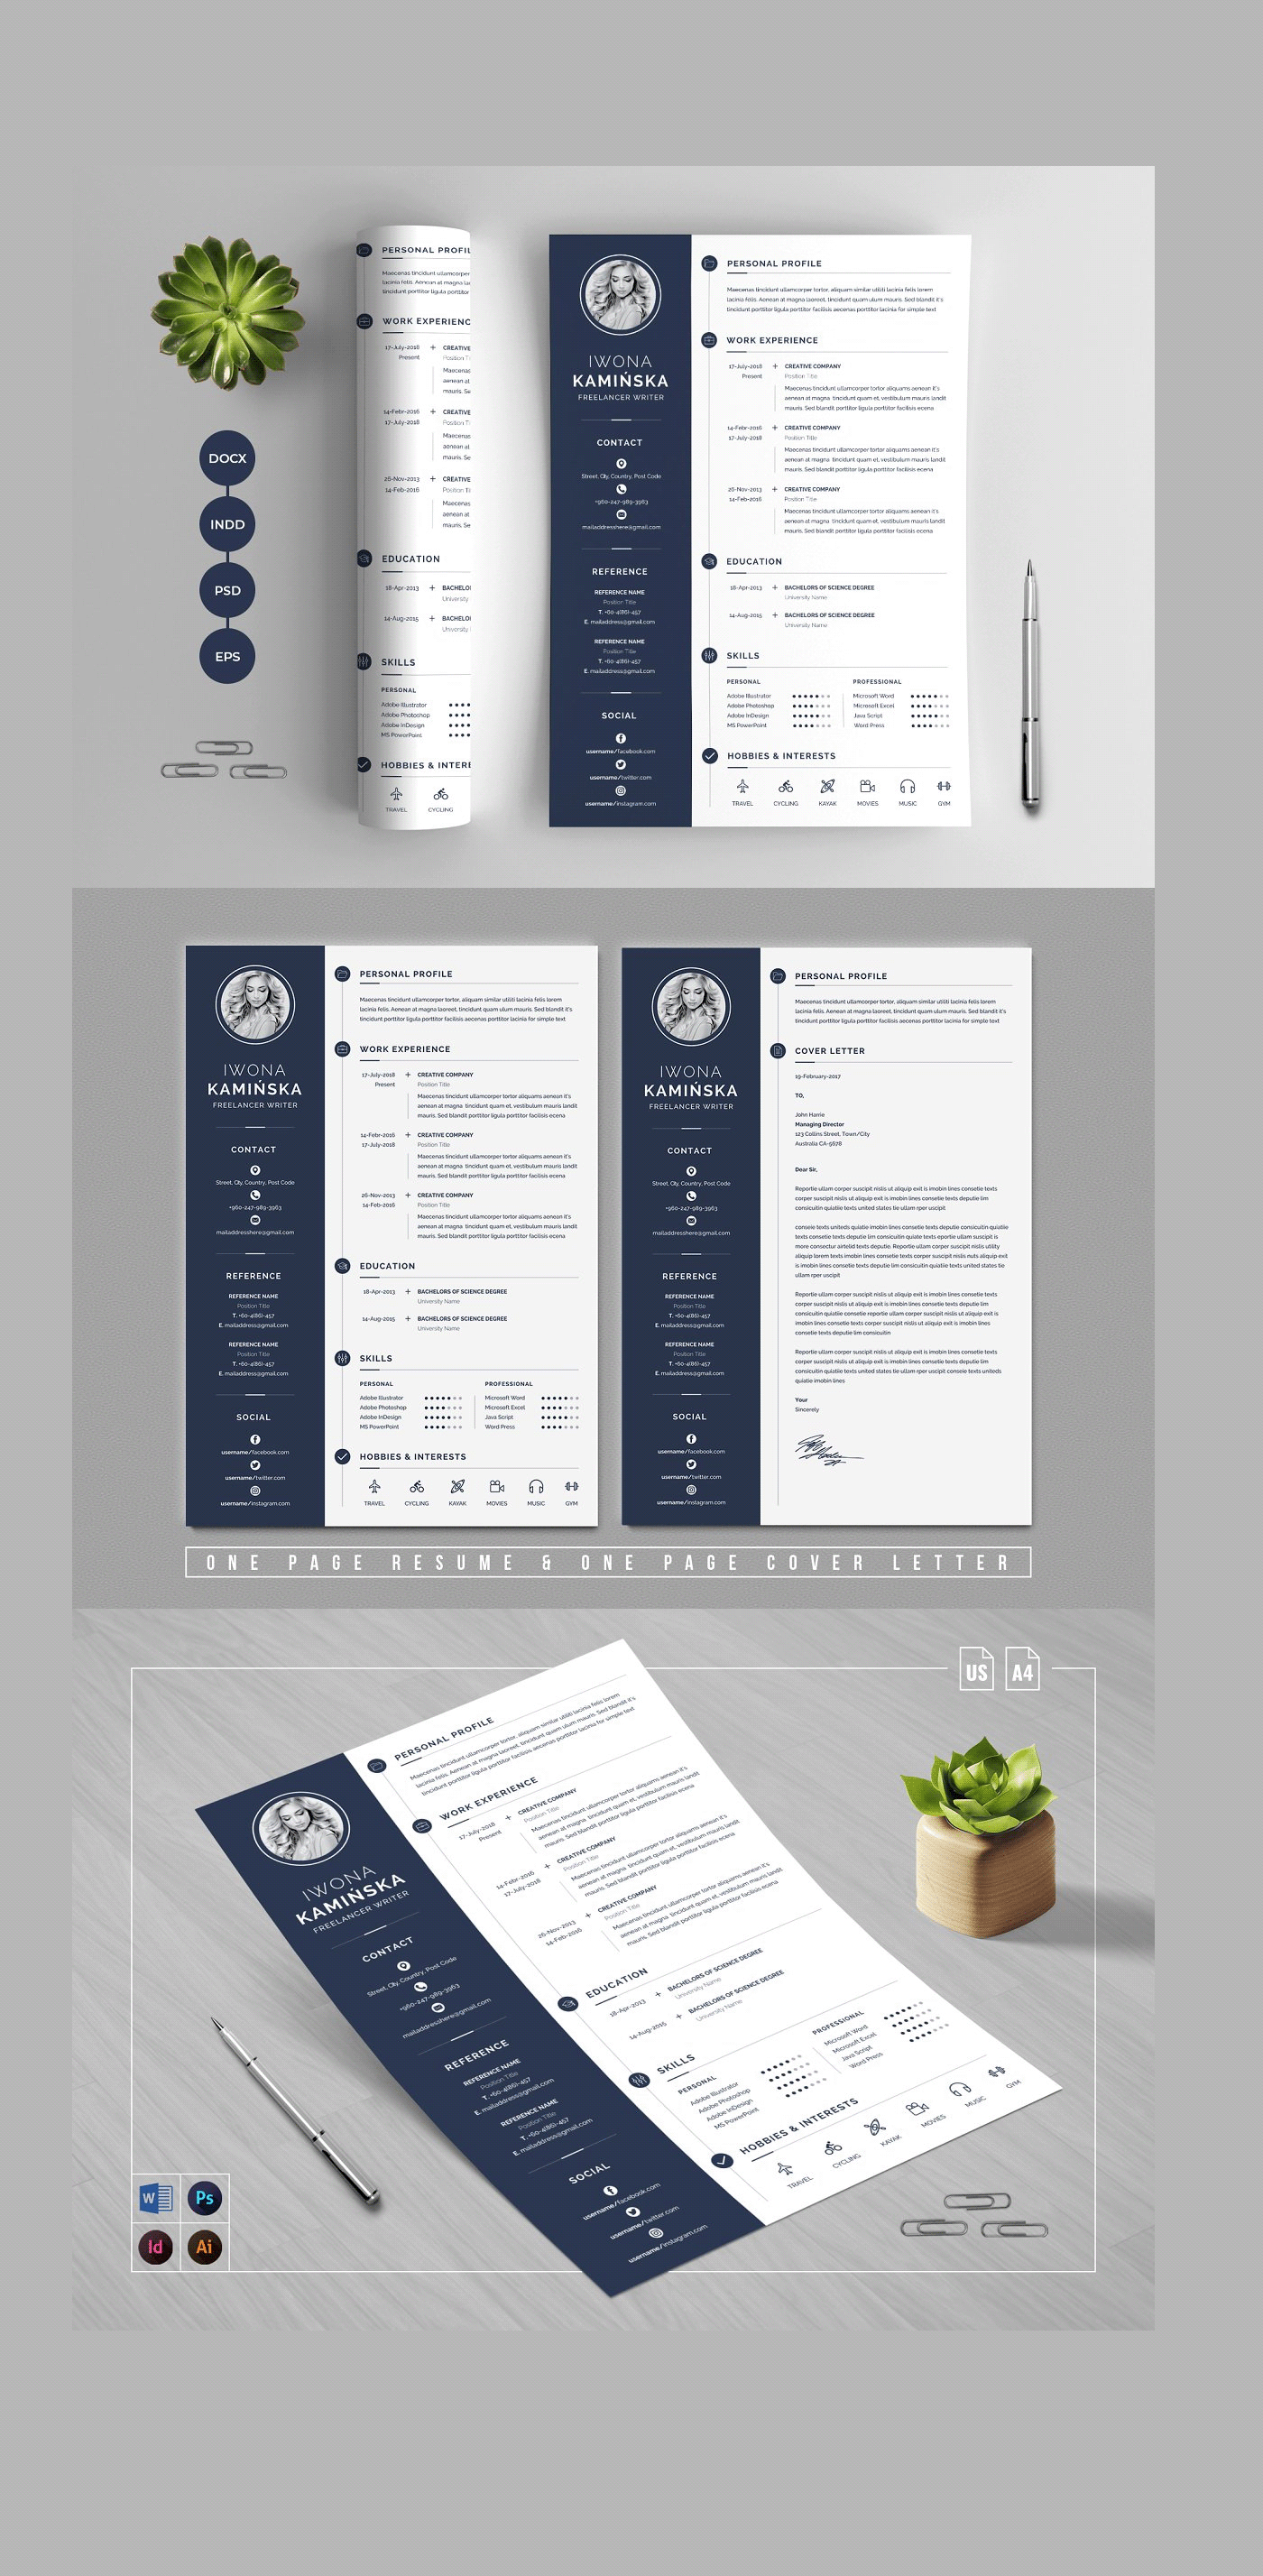 A4 Paper Size Clean Resume/CV in 2020 Clean resume